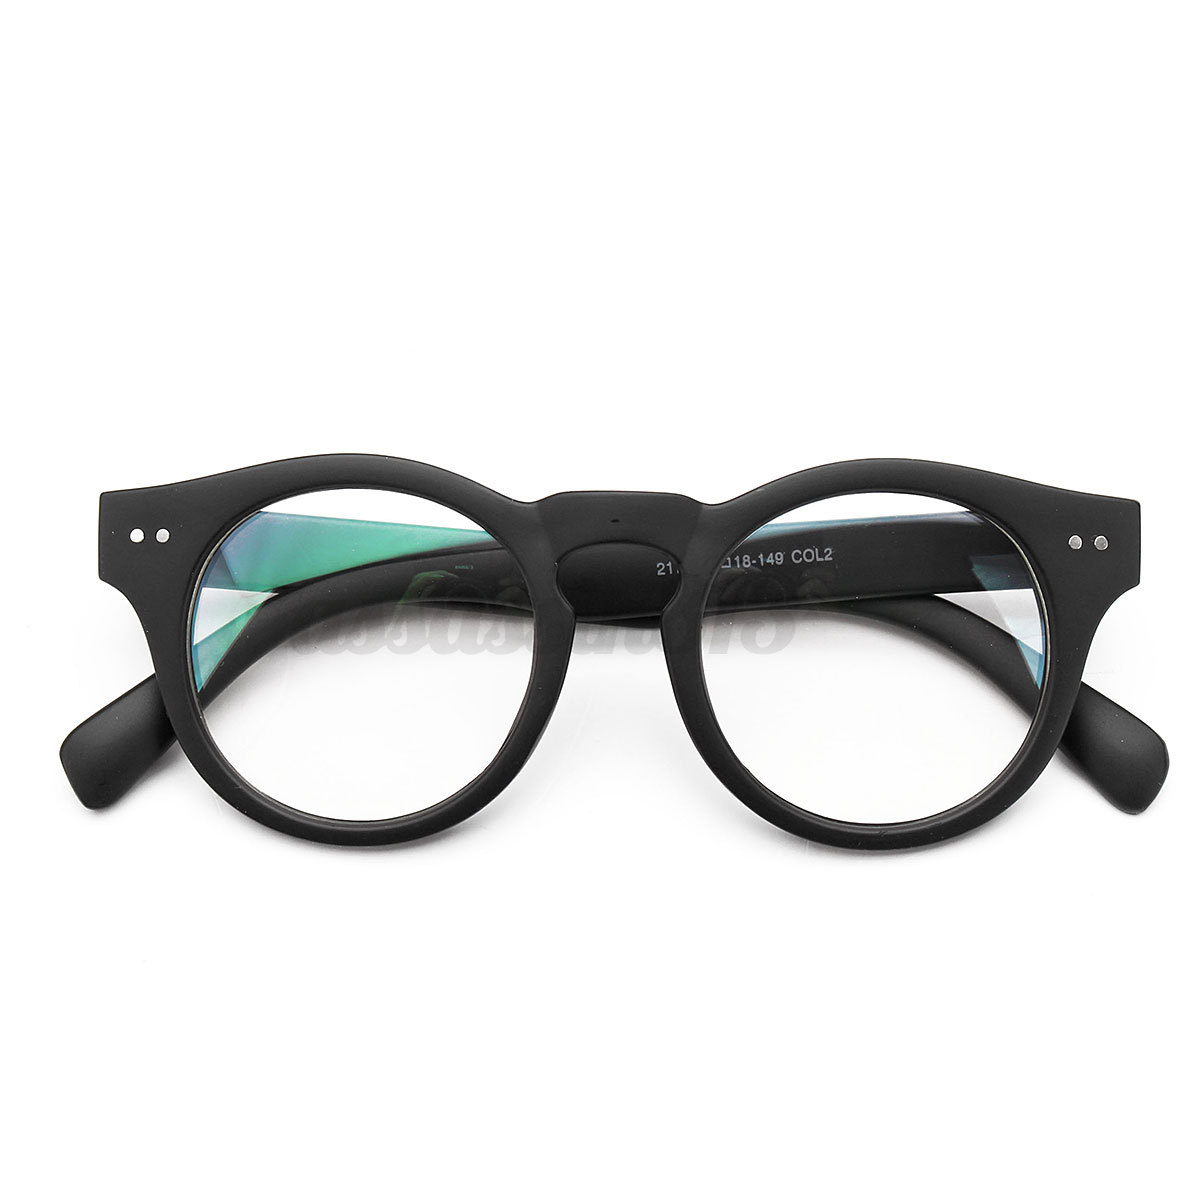 Eyeglass Frame Oxidation : Vintage Women Men Clear Eyeglass Frame Glasses Retro ...